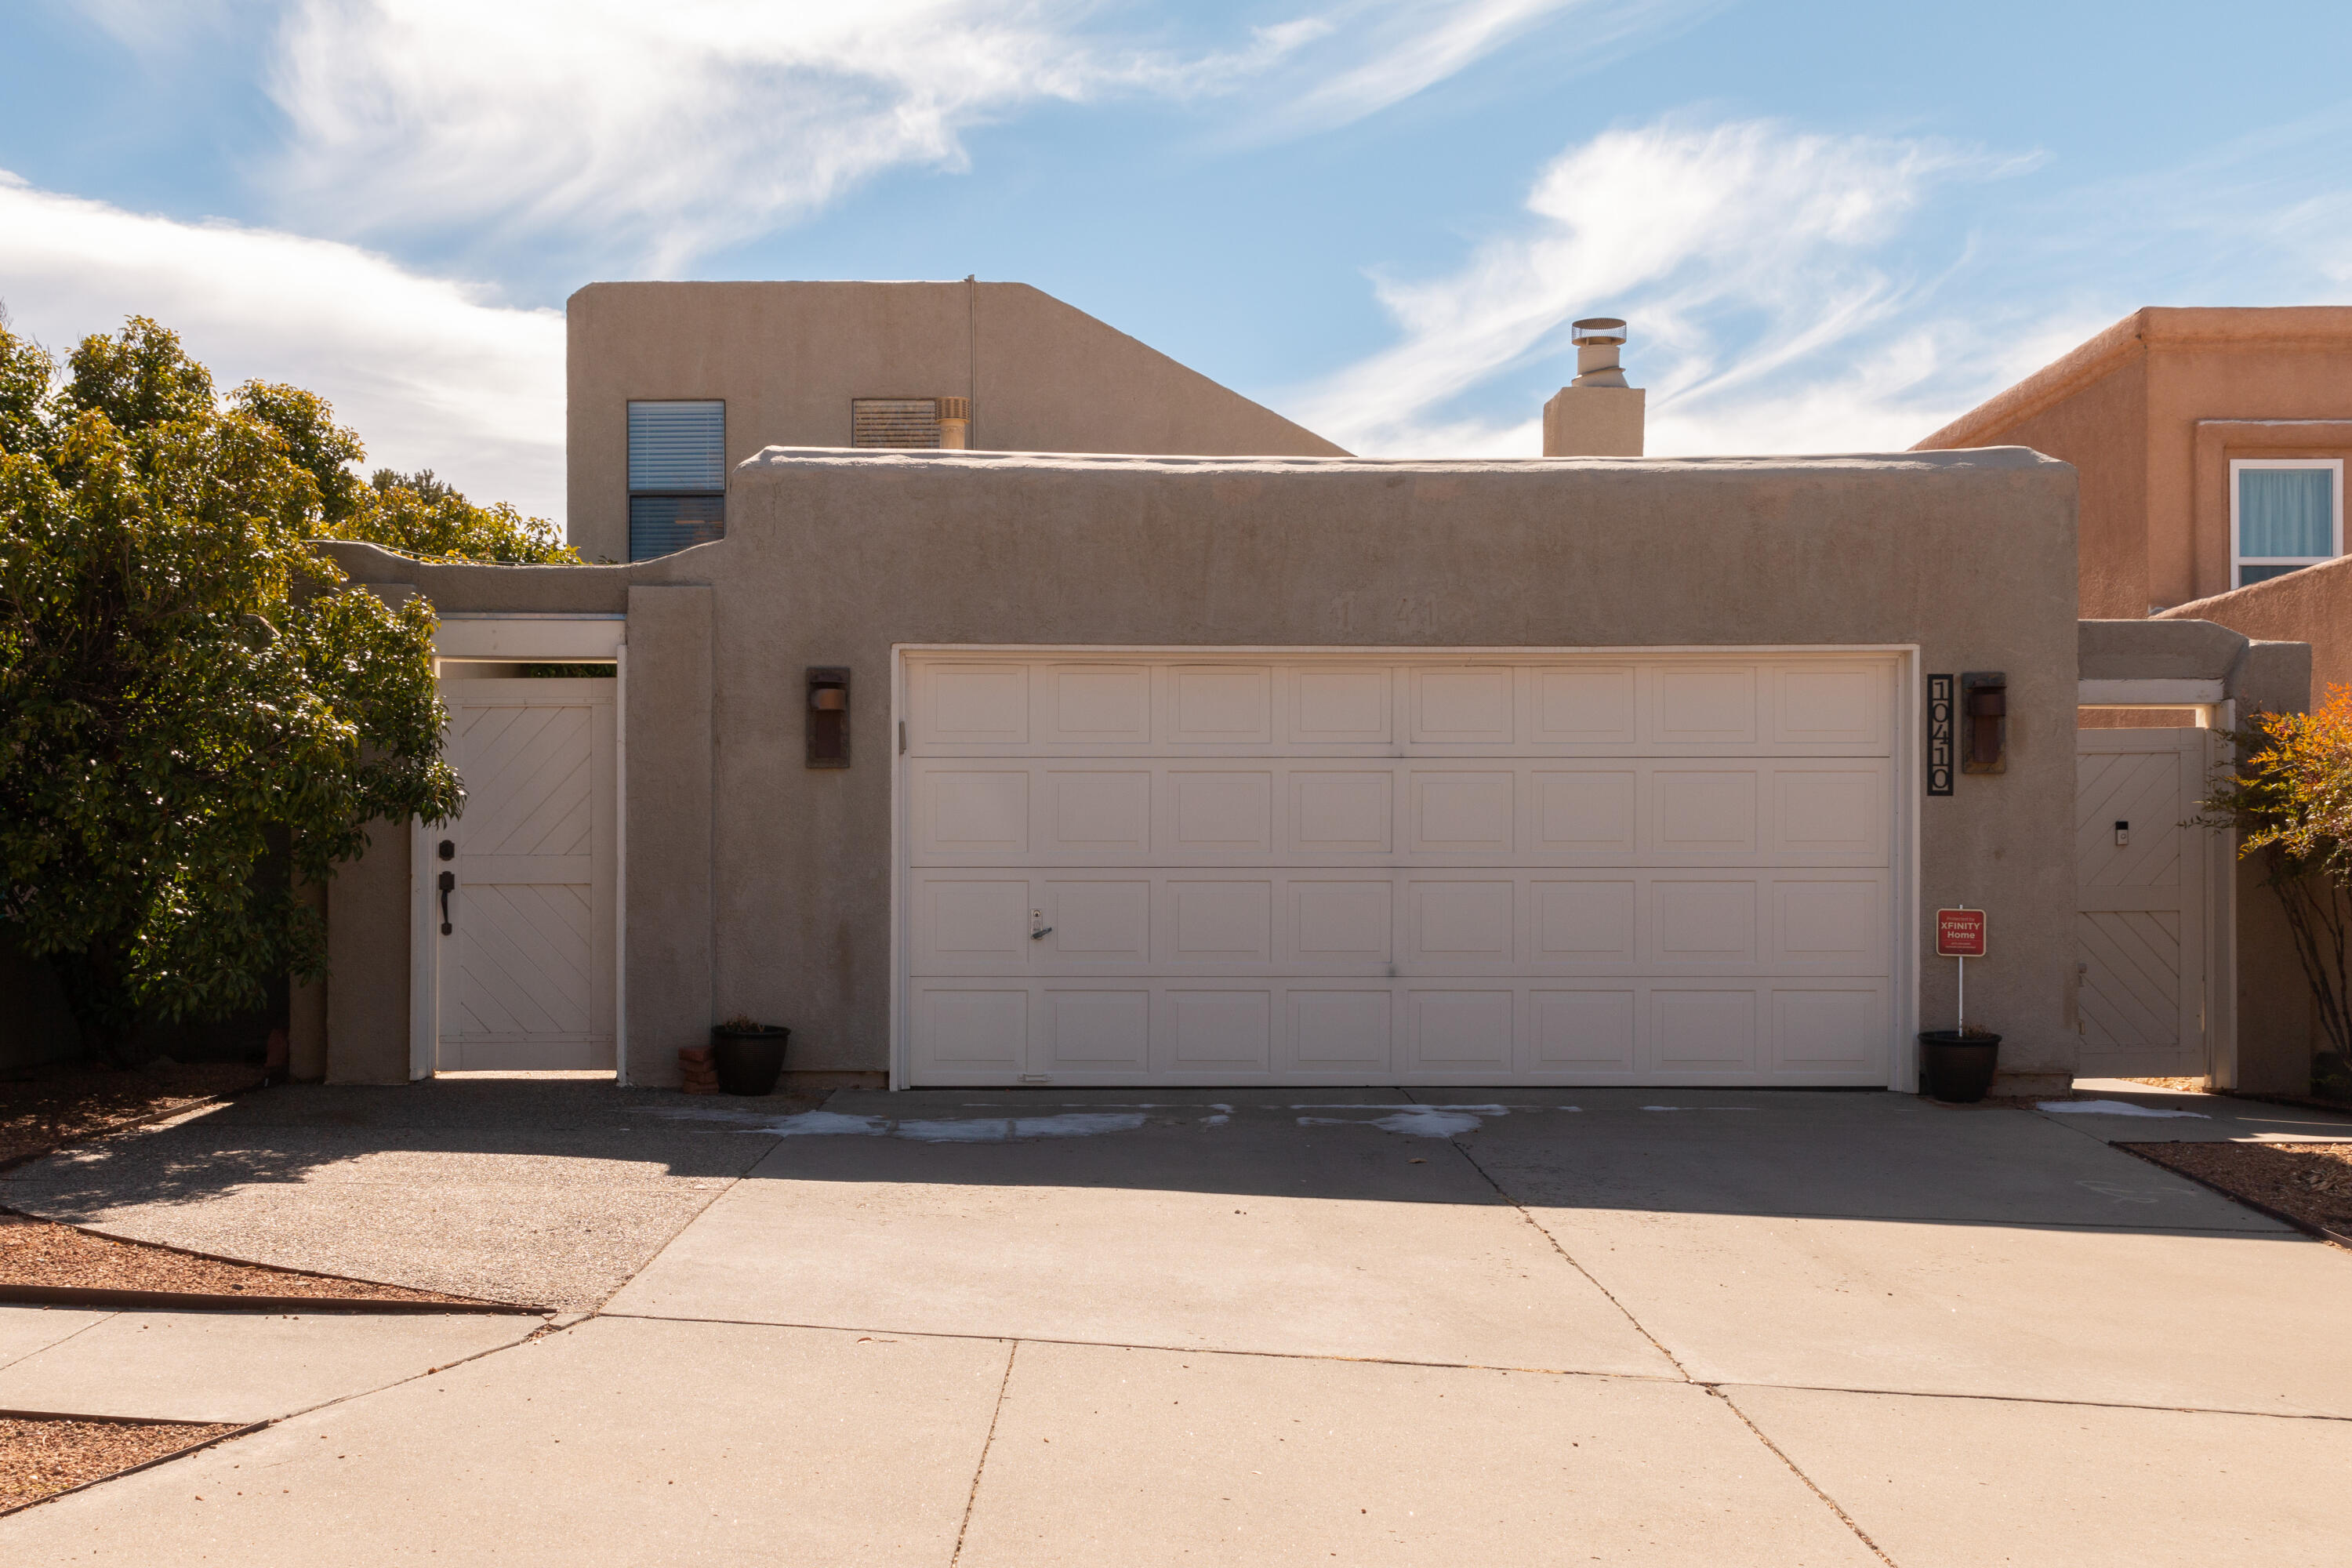 Wow! Step through the private gated courtyard & into this exceptional home. Open living room w/high ceilings, tons of natural light & cozy FP.  The kitchen shows custom cabinets, classy granite tops, stainless appliances & sunny dining area w/bay window. Wonderful guest Bdrm is downstairs w/gorgeous updated bath & a walk-in closet. Bdrm 3 is also downstairs with a private enclosed patio & front drive access. Upstairs shows the elegant Master Suite w/2-walk-in closets & beautiful updated bath. A cozy loft offers a 2nd living area, office or flex space w/some Sandia views. The backyard offers a lovely shaded Pergola, & colorful low maintenance landscape. Such a great place to unwind or entertain. Nice 2 car garage w/painted floors/walls. New TPO Roof 2019! Newer 50-gal H2O. Refrigerated Air!